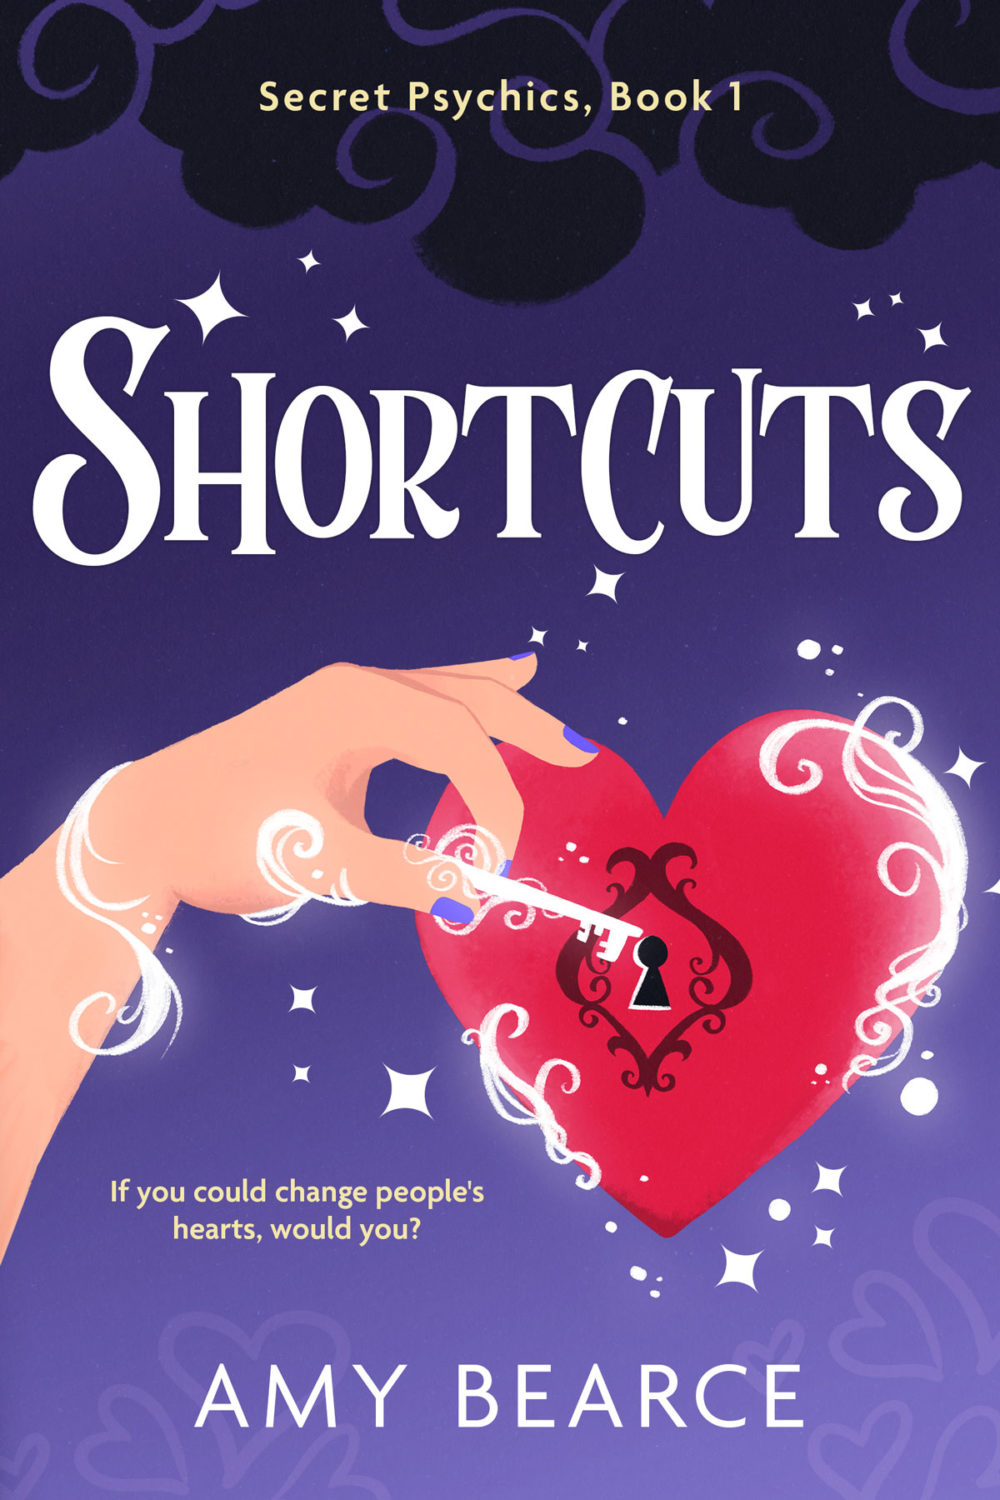 Shortcuts by Amy Bearce